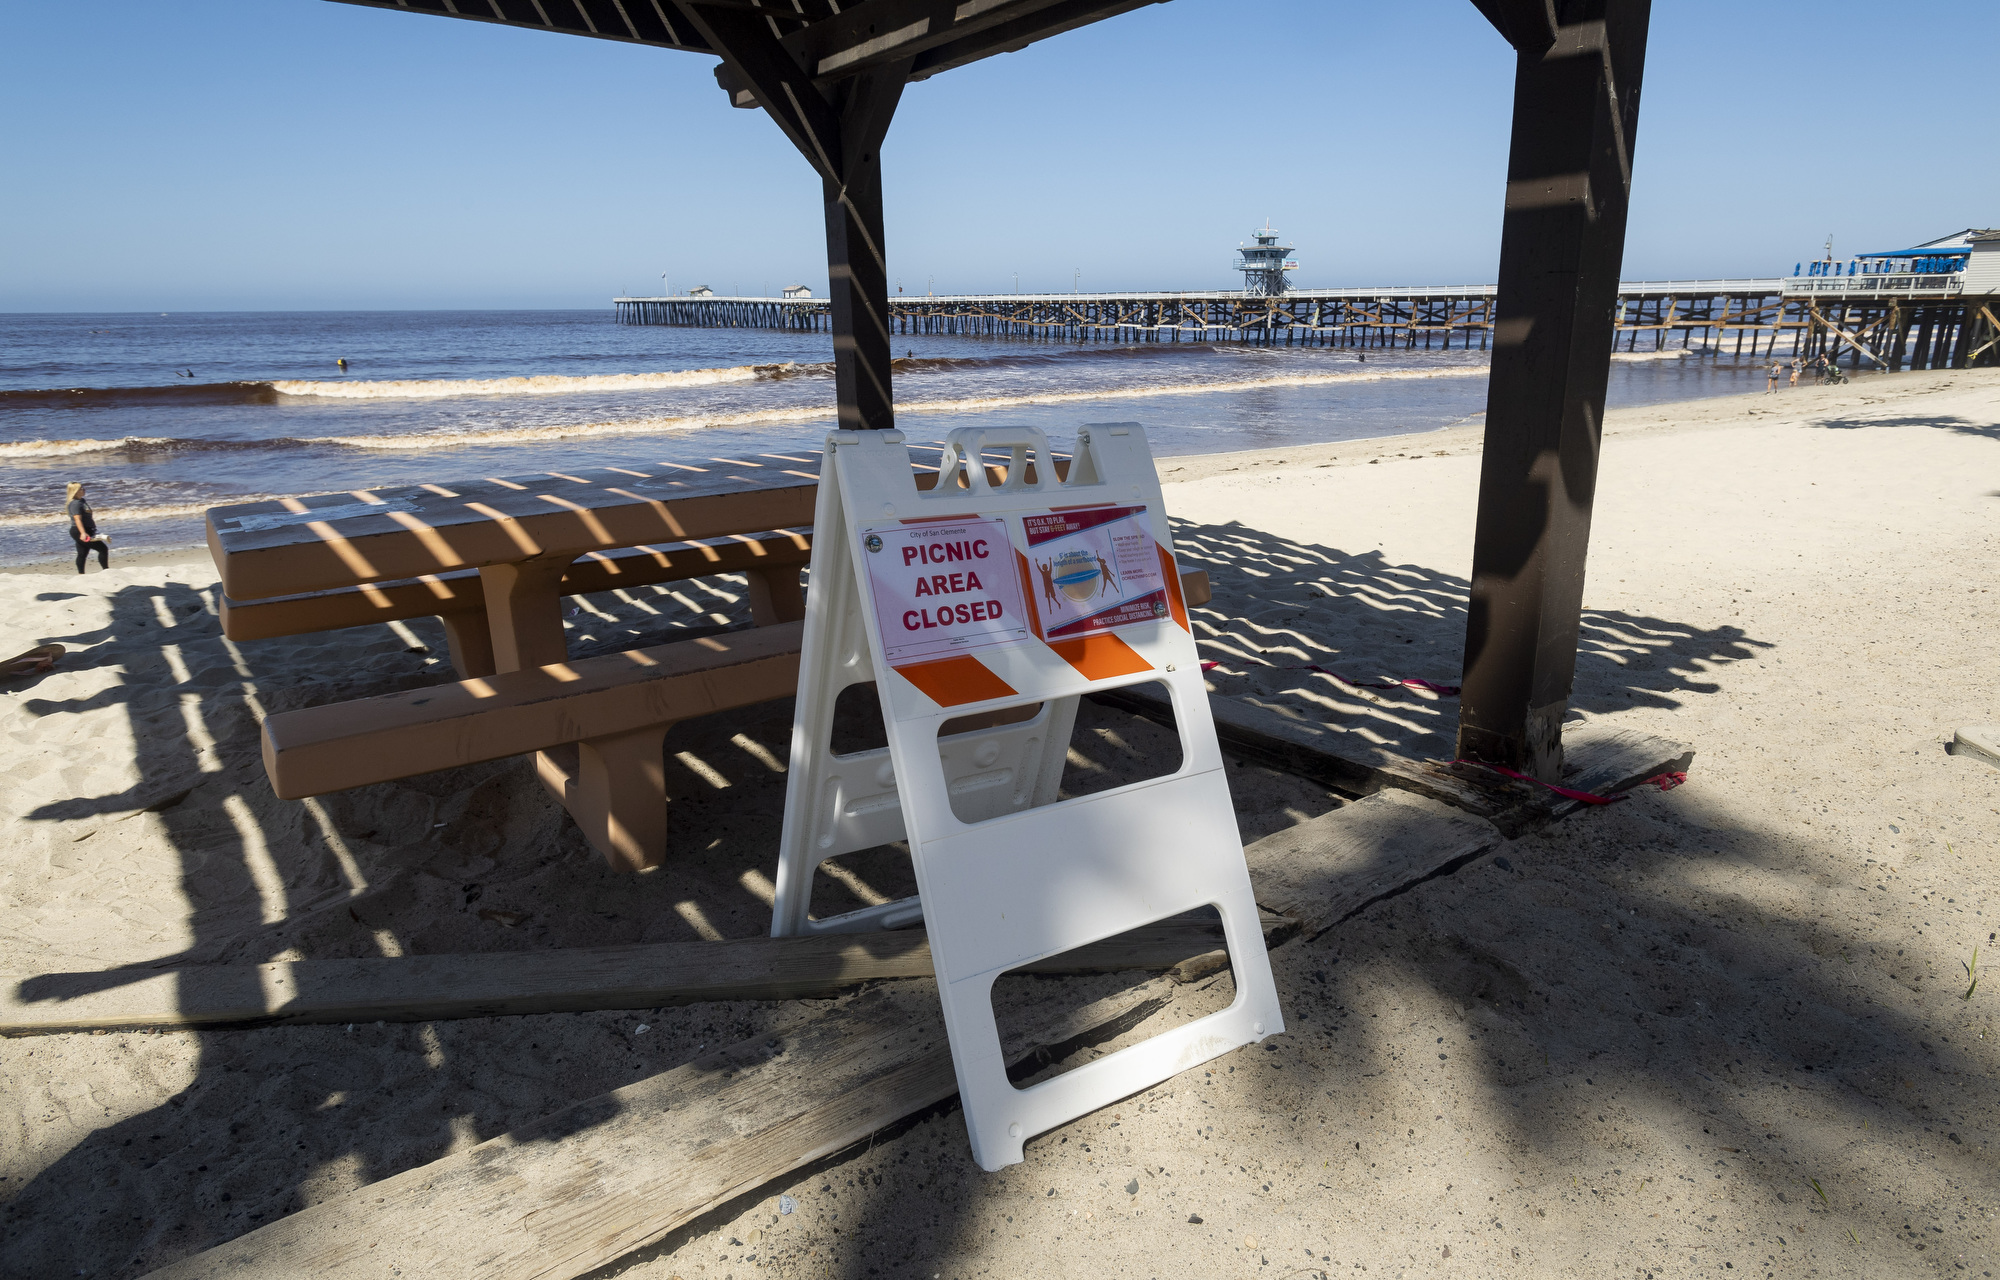 Eight Protesters Arrested After Storming Fencing at San Clemente Beach